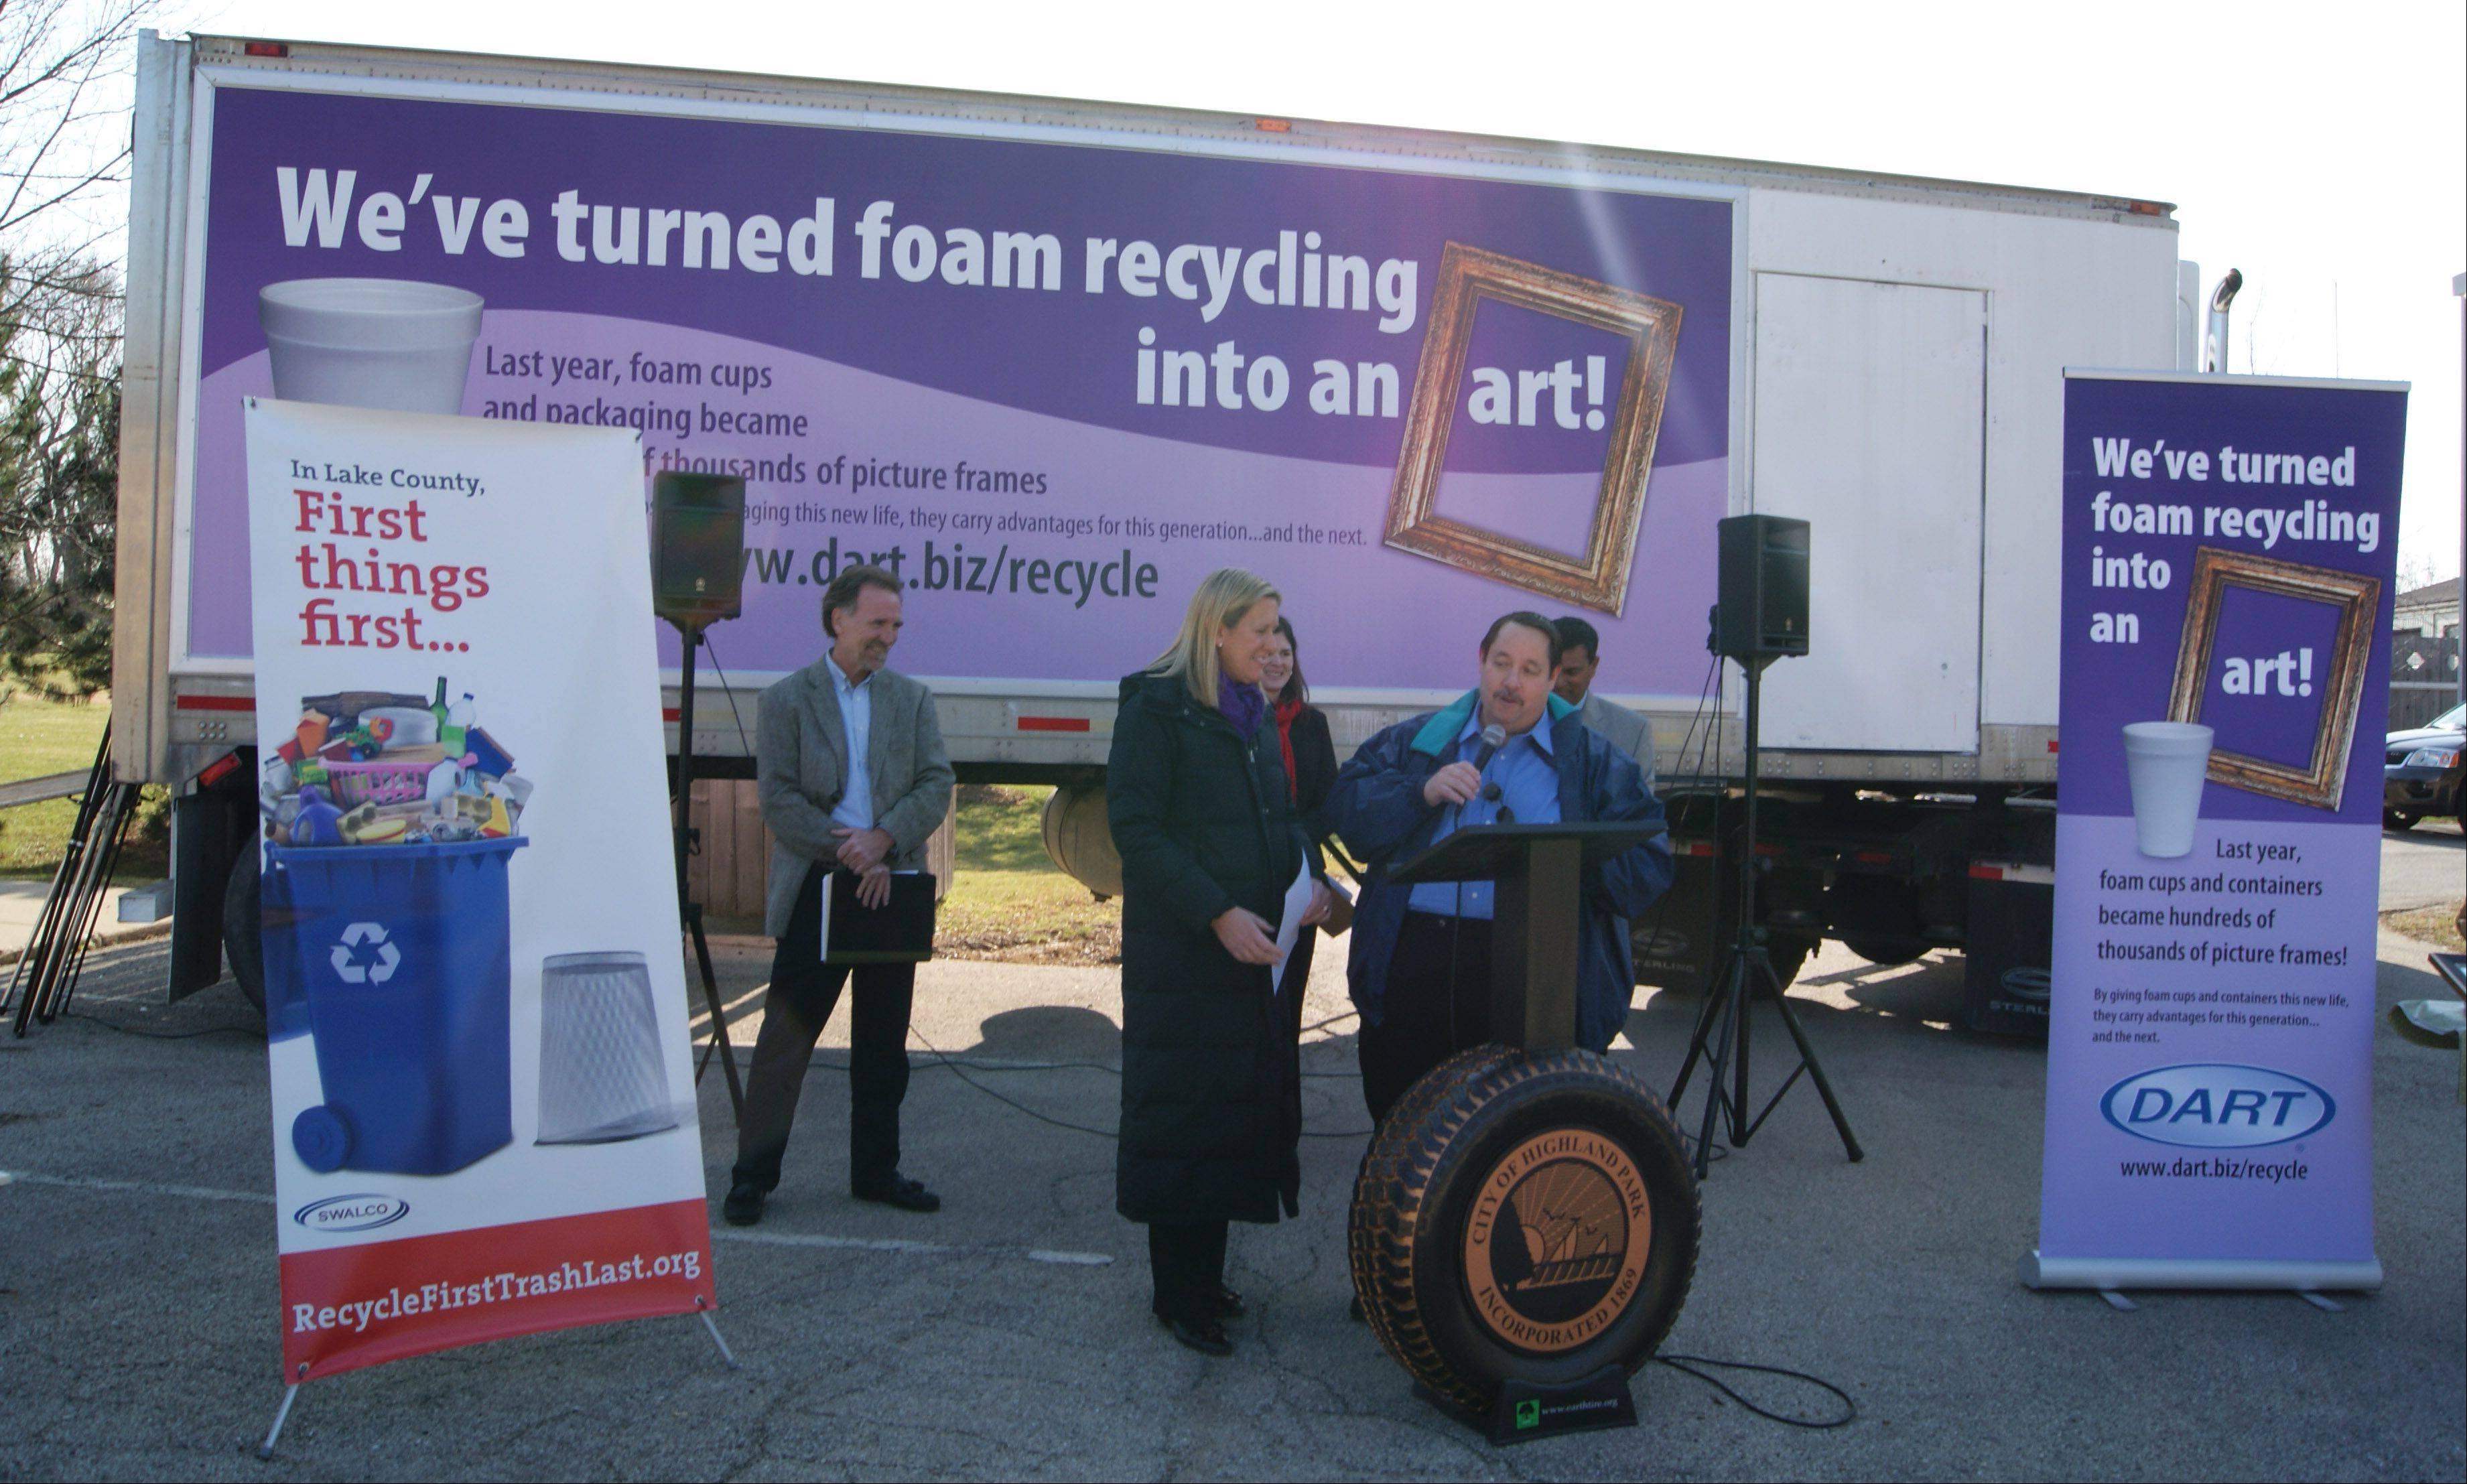 Highland Park city leaders and local partners on Friday announce the results of community foam collection efforts. Since the program launched in 2011, the community has dropped off containers, cups and other products at the city�s collection site resulting in more than 4,417 pounds of foam that's been recycled.